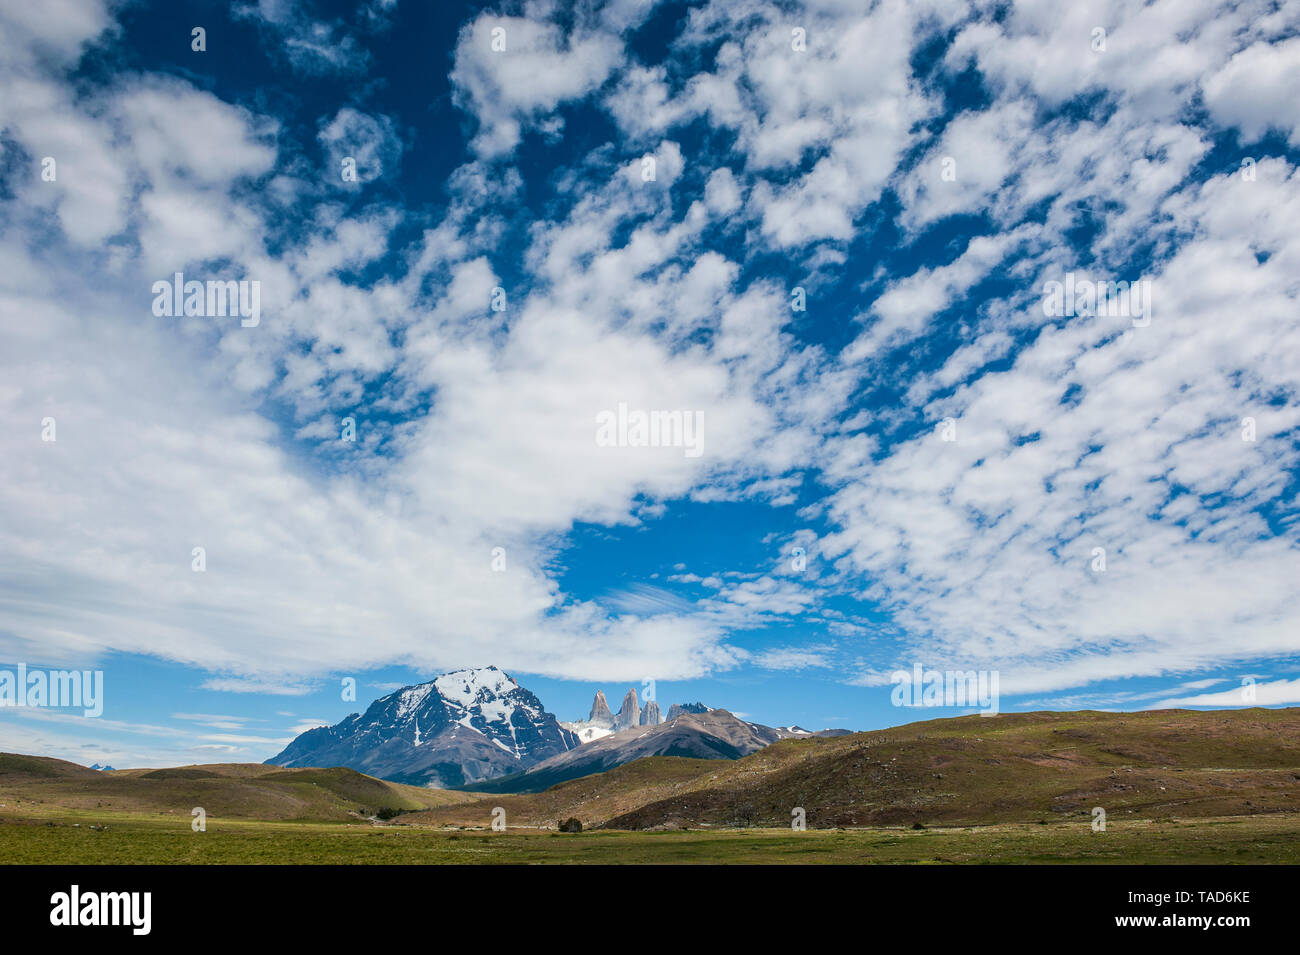 Chile, Patagonia, Torres del Paine National Park, meadow and mountains under cloudy sky - Stock Image